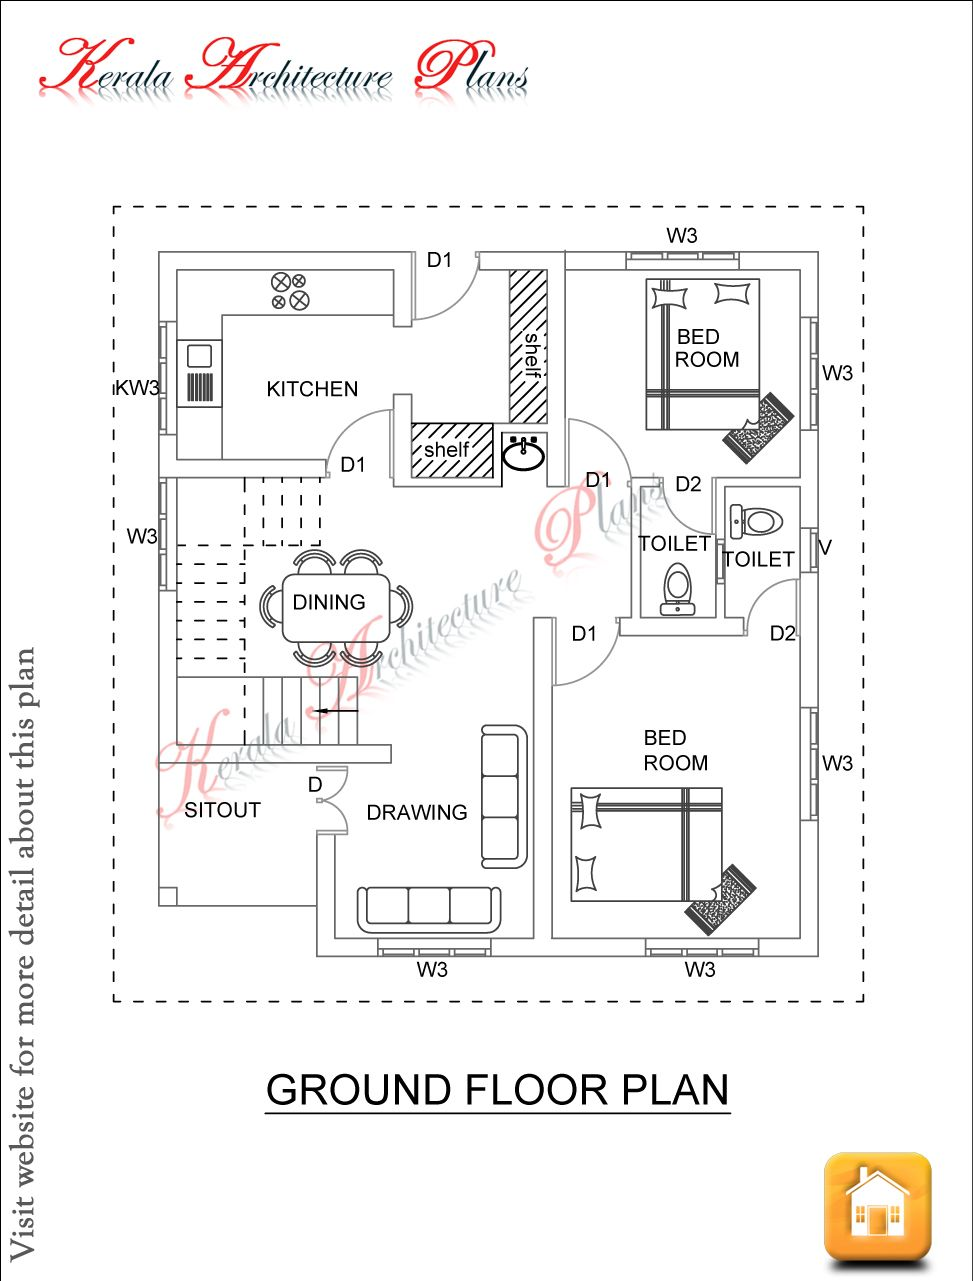 Kerala architecture plans dec 06 ff 1500 square feet house plan ground floor and